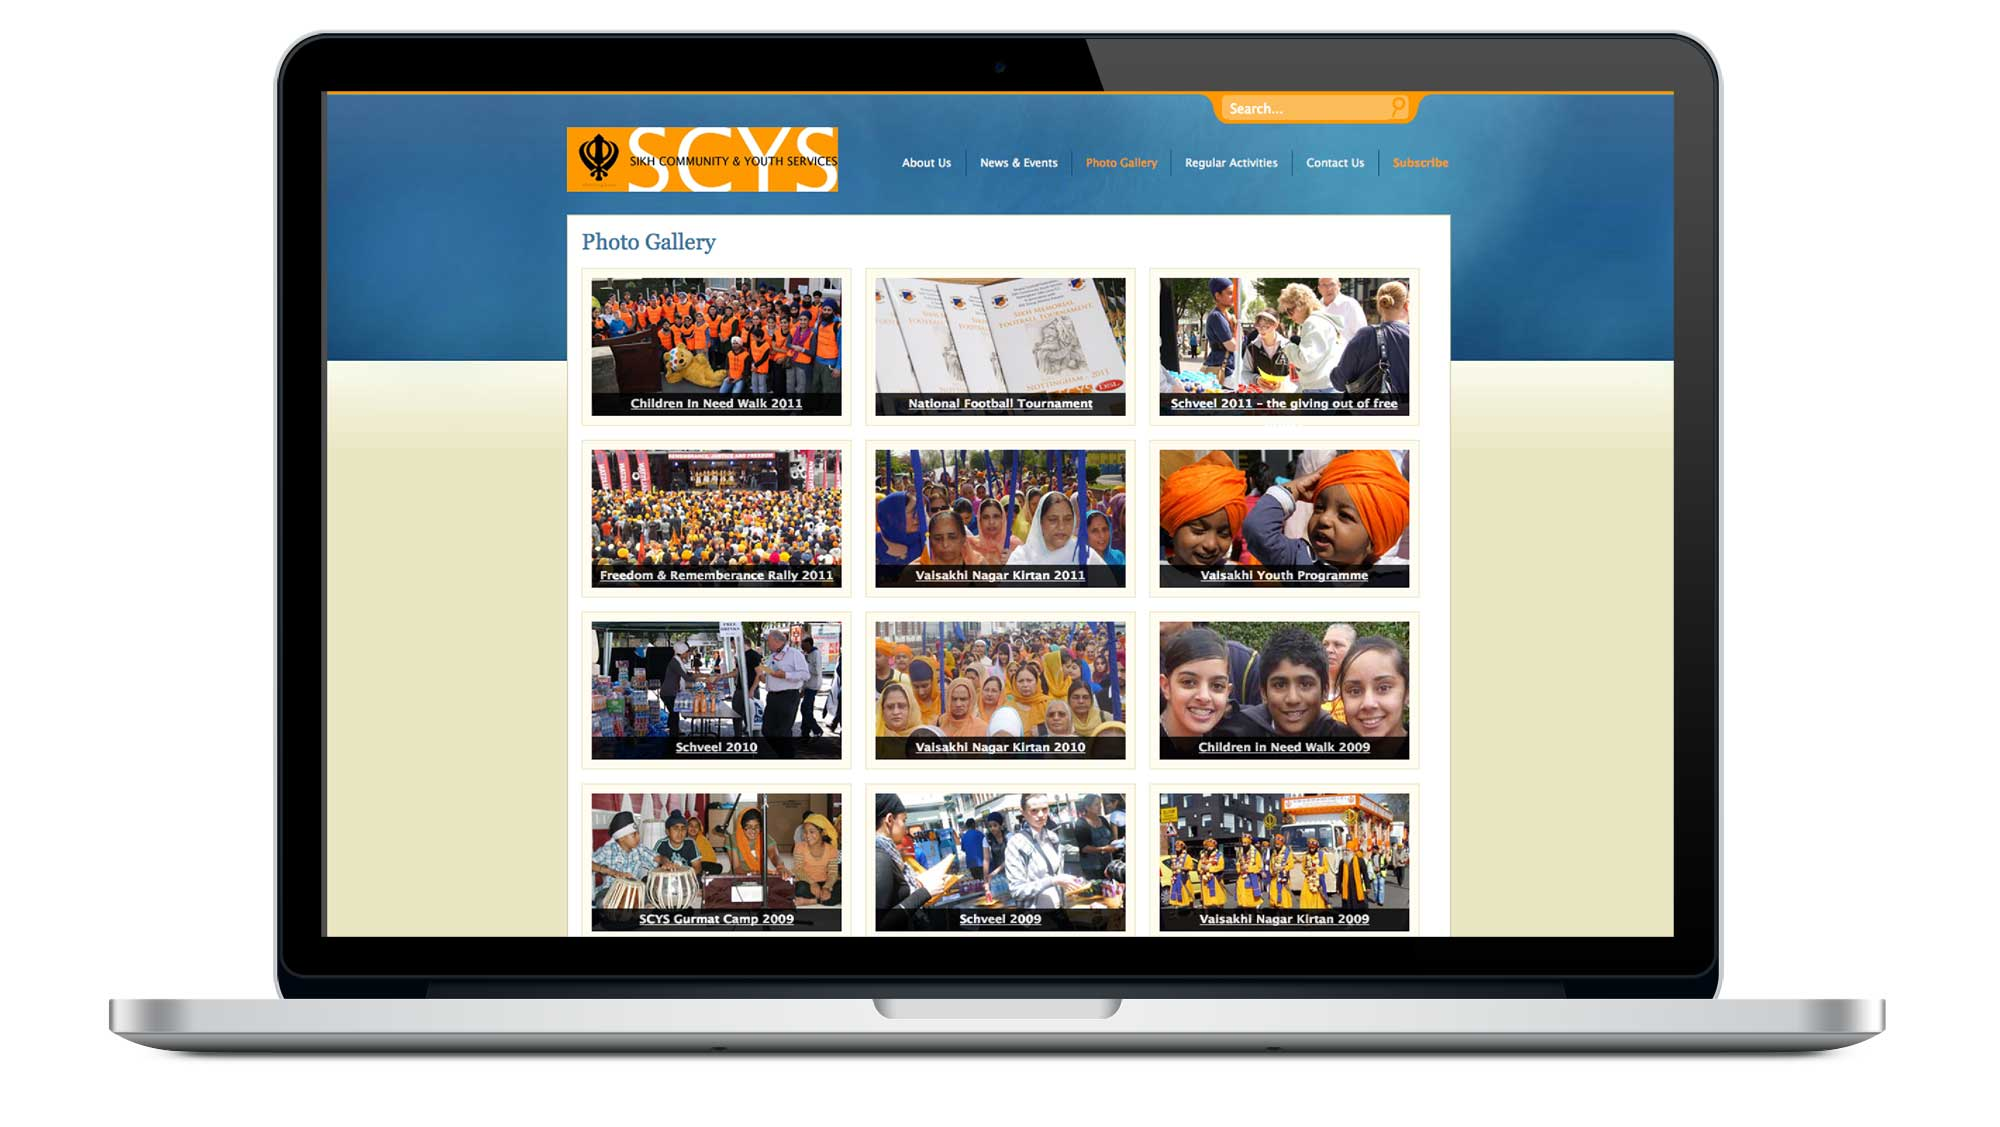 Sikh Community & Youth Services (SCYS) Website Gallery Page